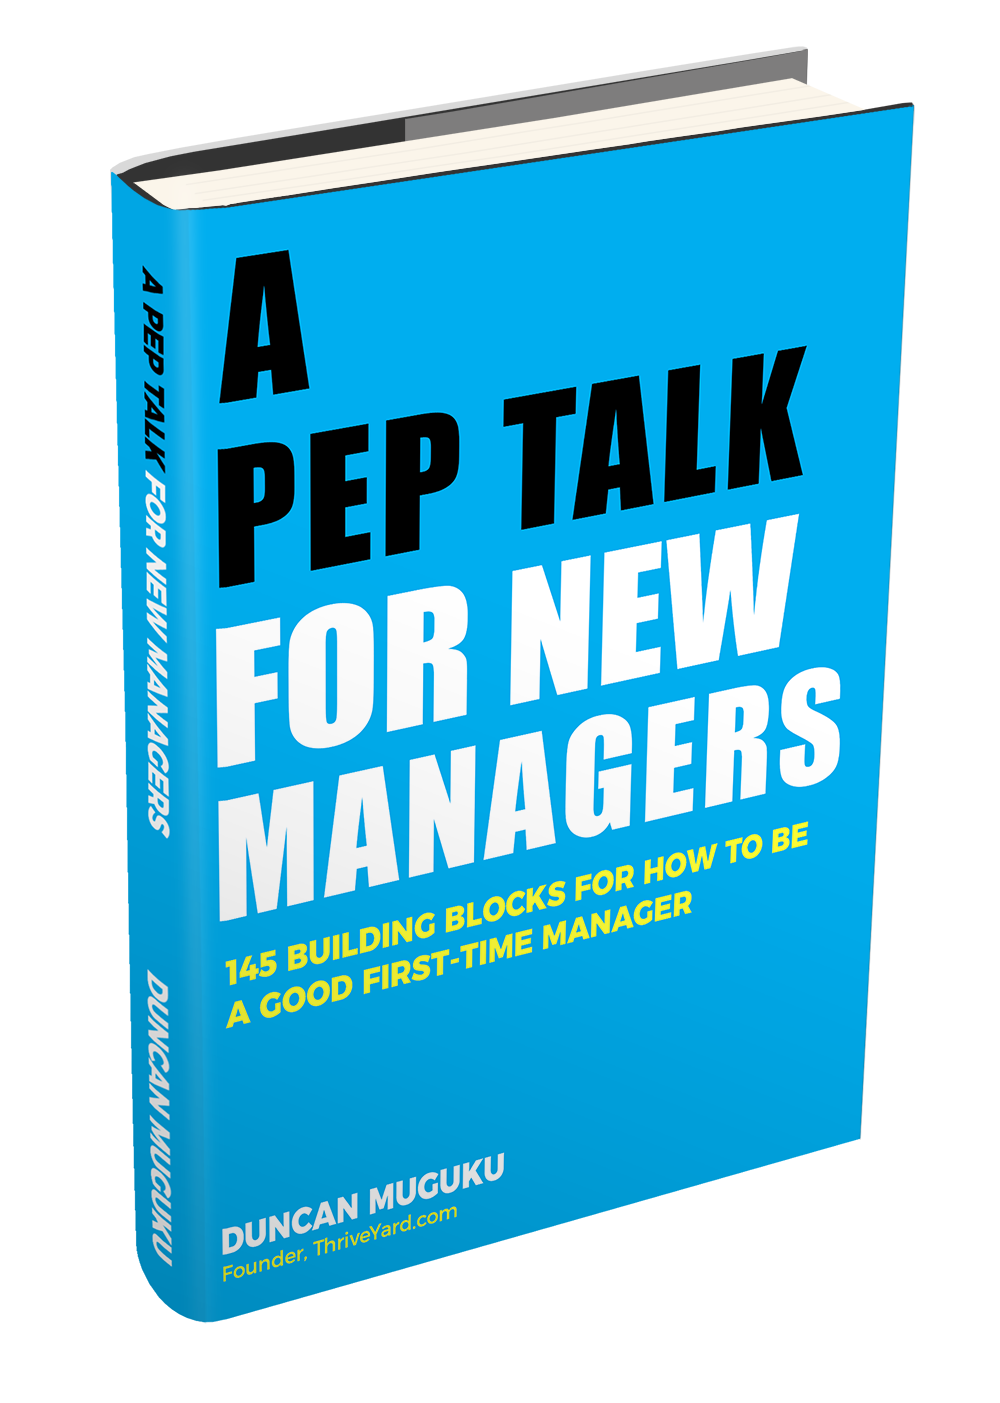 a pep talk for new managers ebook_thriveyard_duncan muguku - Taking Initiative In The Workplace